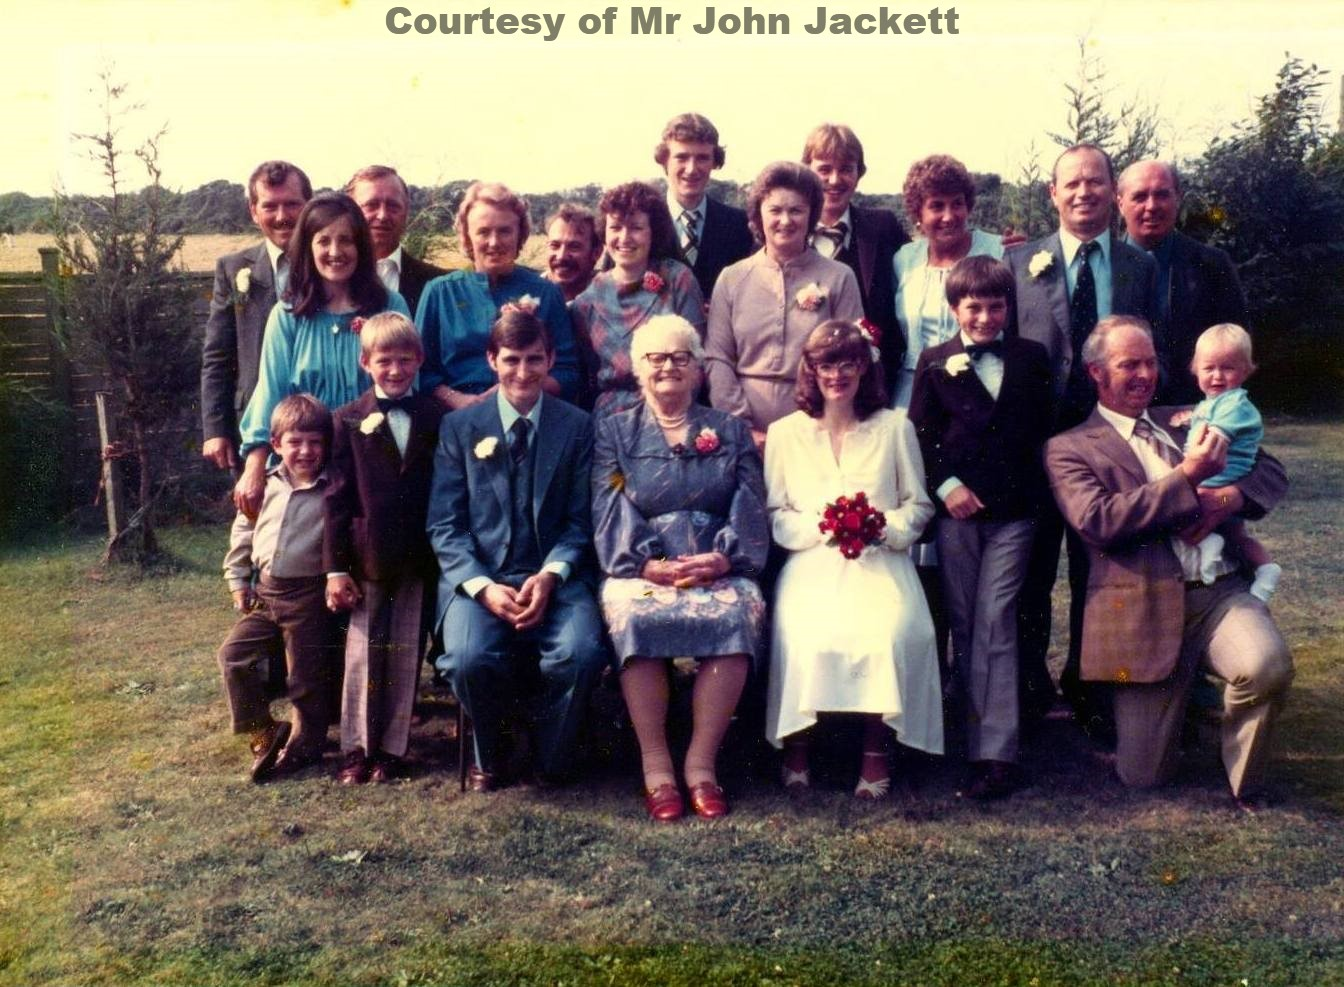 The wedding of Perranwell girl Rita Eley - 1981